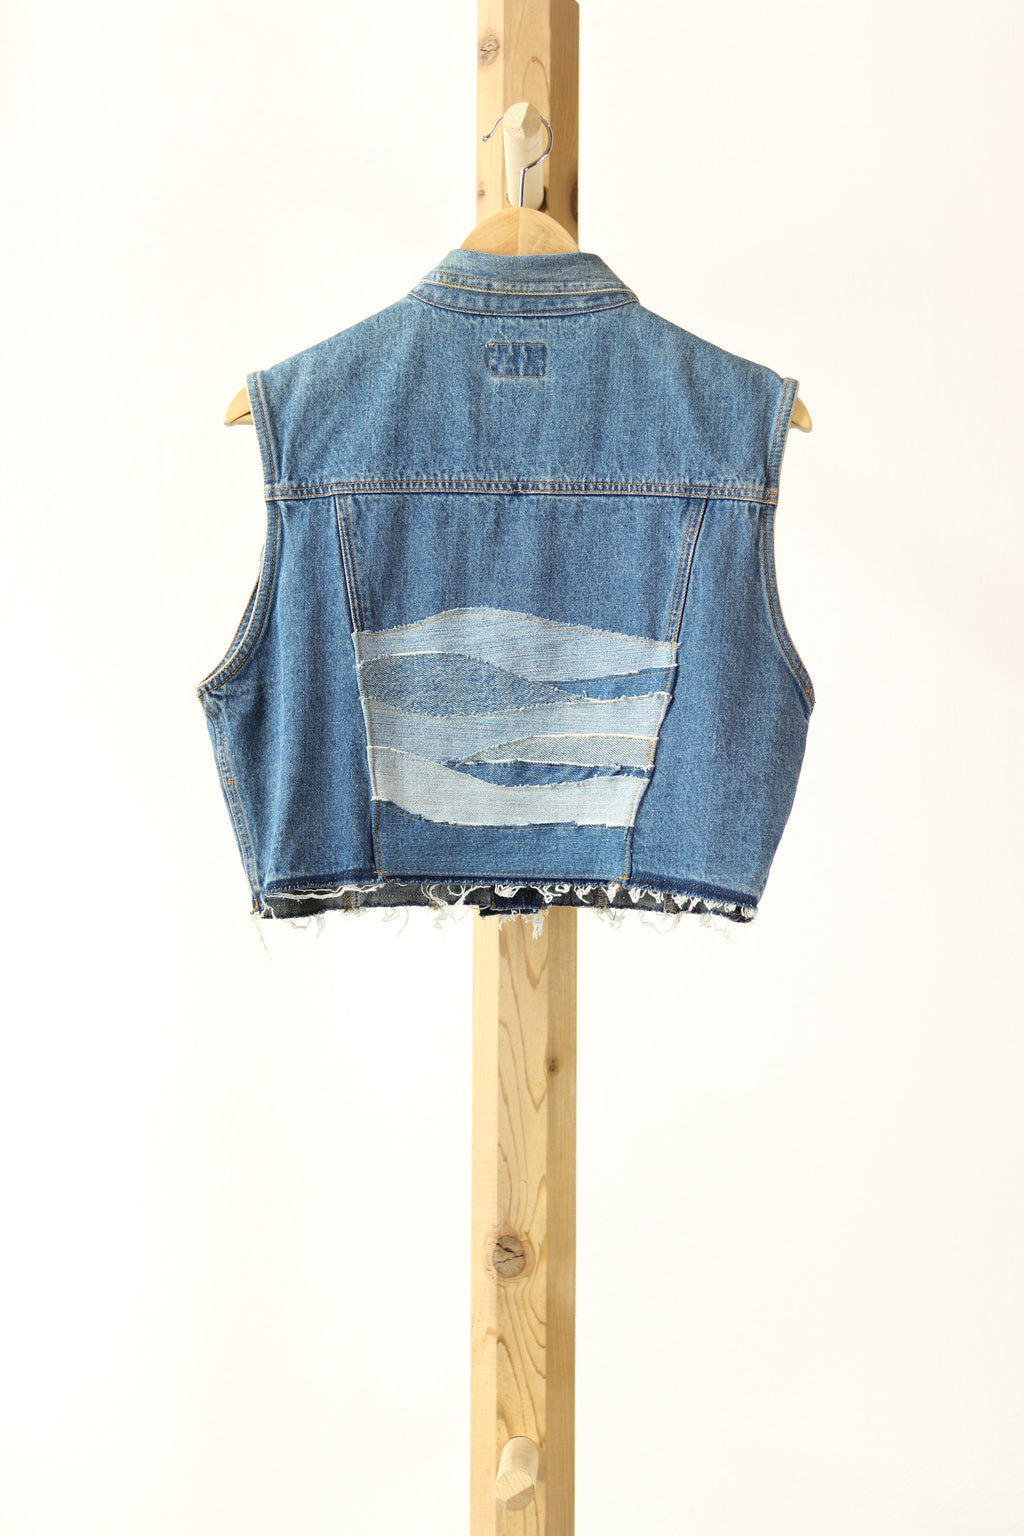 DETAILS :  Description - Jordache Denim Vest Rework in blue with custom wave denim design + frayed hem Colour - Blue Denim Size - L (fits more like a M) Brand - Jordache What it's made of - 100% Cotton Vagabond Reworked piece - Vintage Jordache Denim Vest , Reworked back panel with wave design made from repurposed denim clothing that was deconstructed & reconstructed into this one of a kind design, frayed hem.